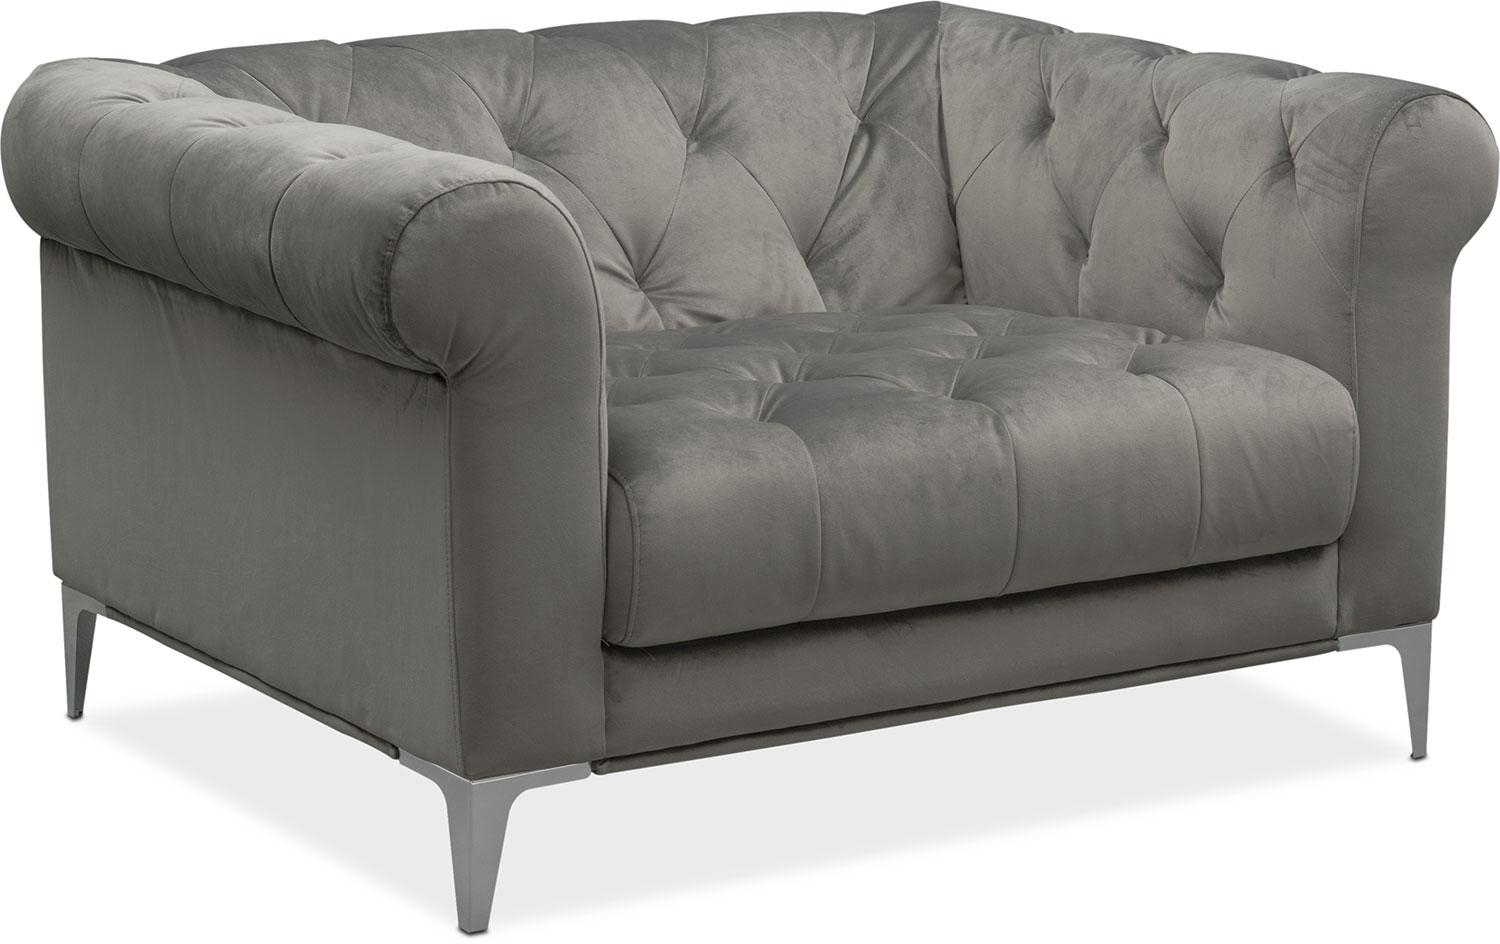 David Sofa And Two Cuddler Chairs Set – Flannel | Value City Furniture Throughout Sofa Chairs (View 18 of 20)